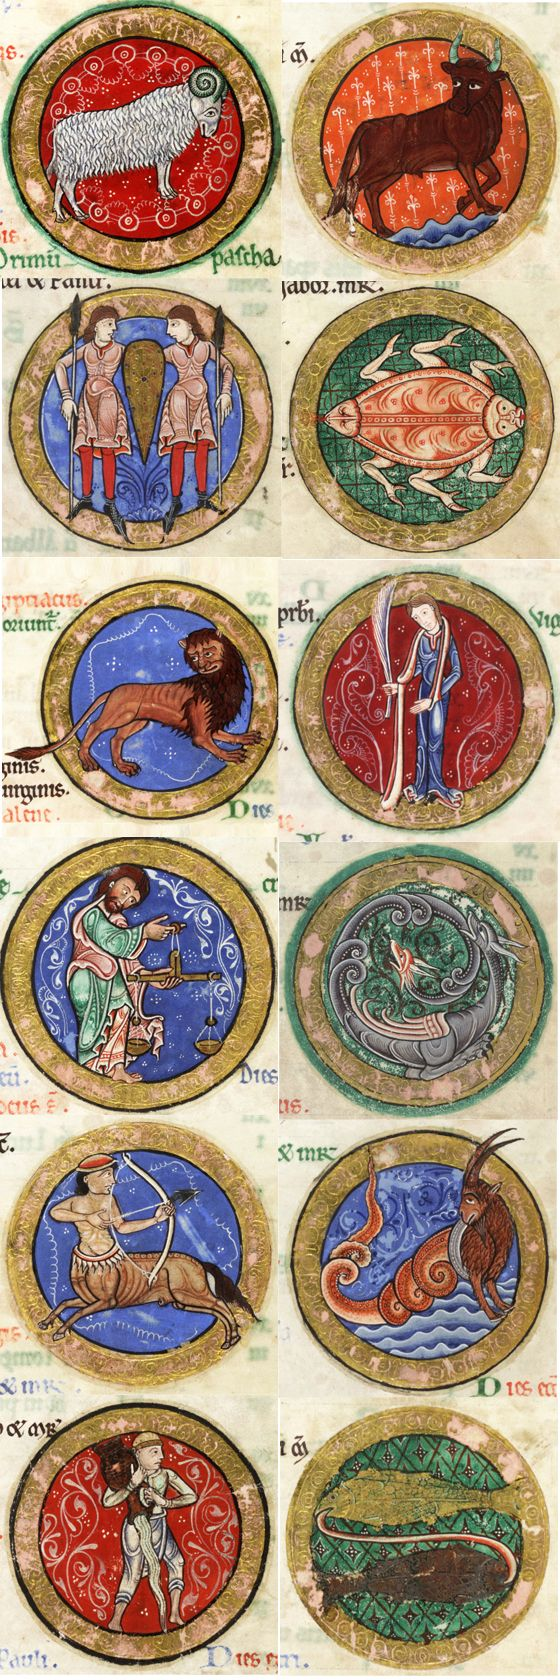 Miniatures of the twelve Zodiac signs from the elaborately illuminated Hunterian Psalter, cca. 1170 England. This manuscript is a splendid example of Romanesque book art.